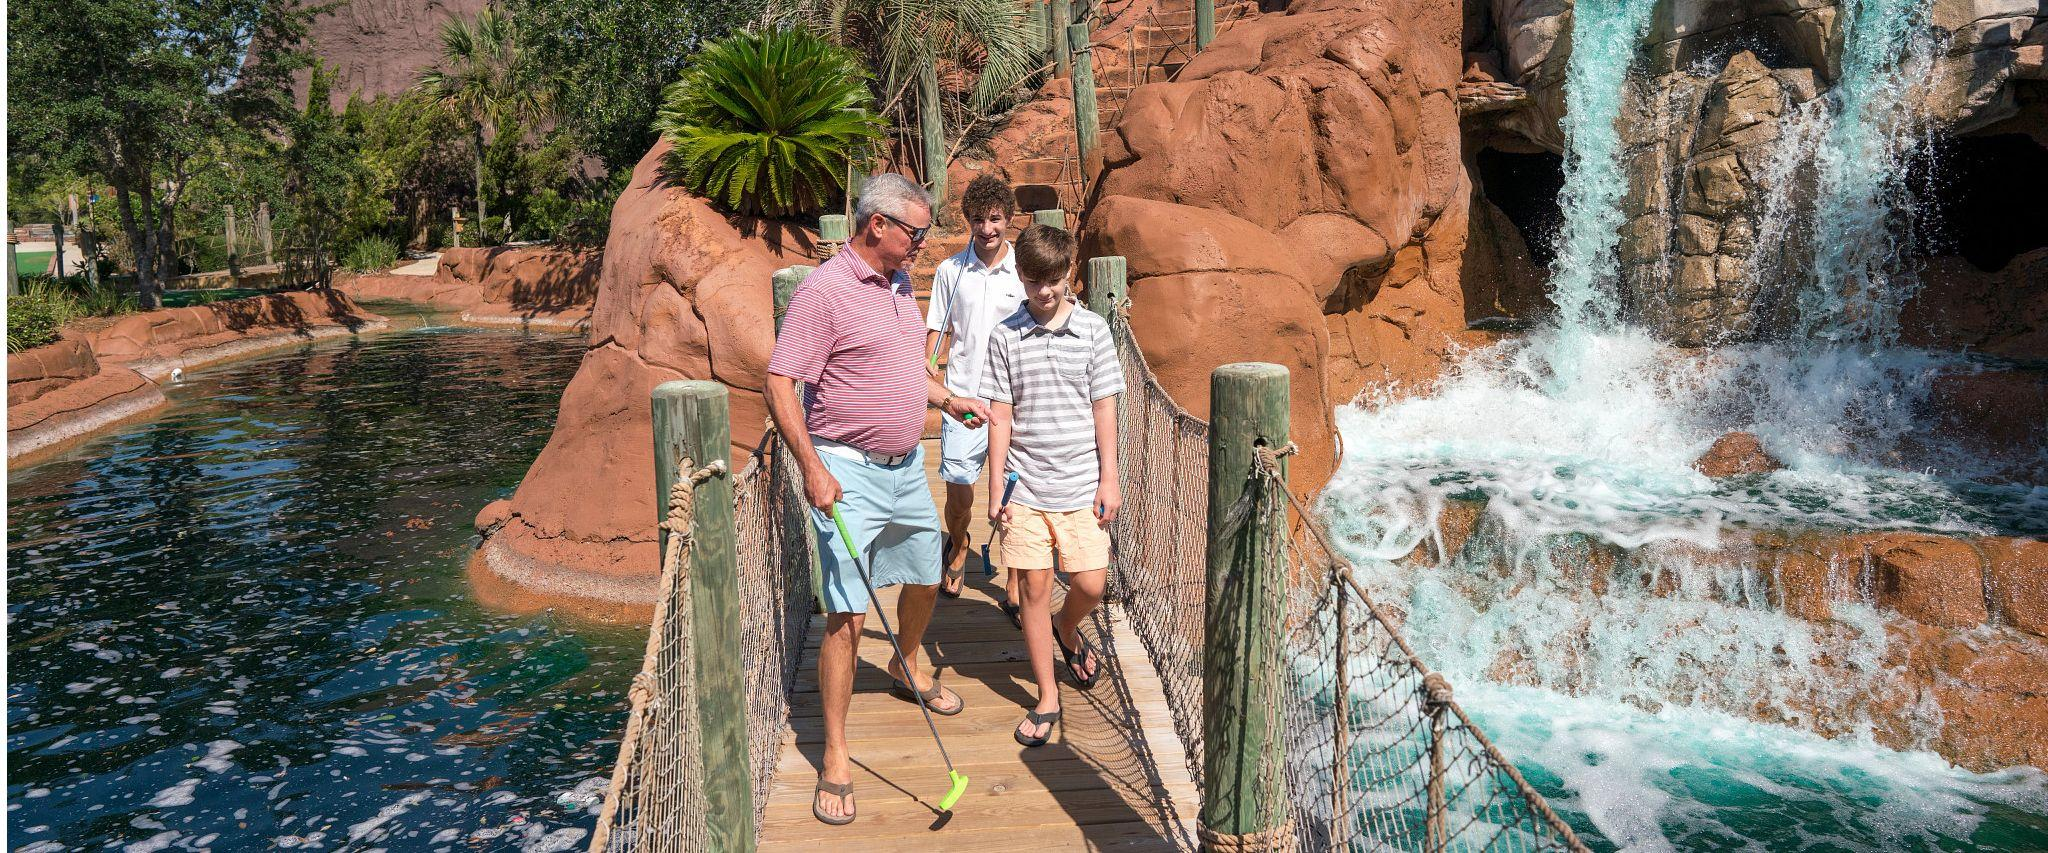 Family playing mini golf at Adventure Island in Orange Beach, AL